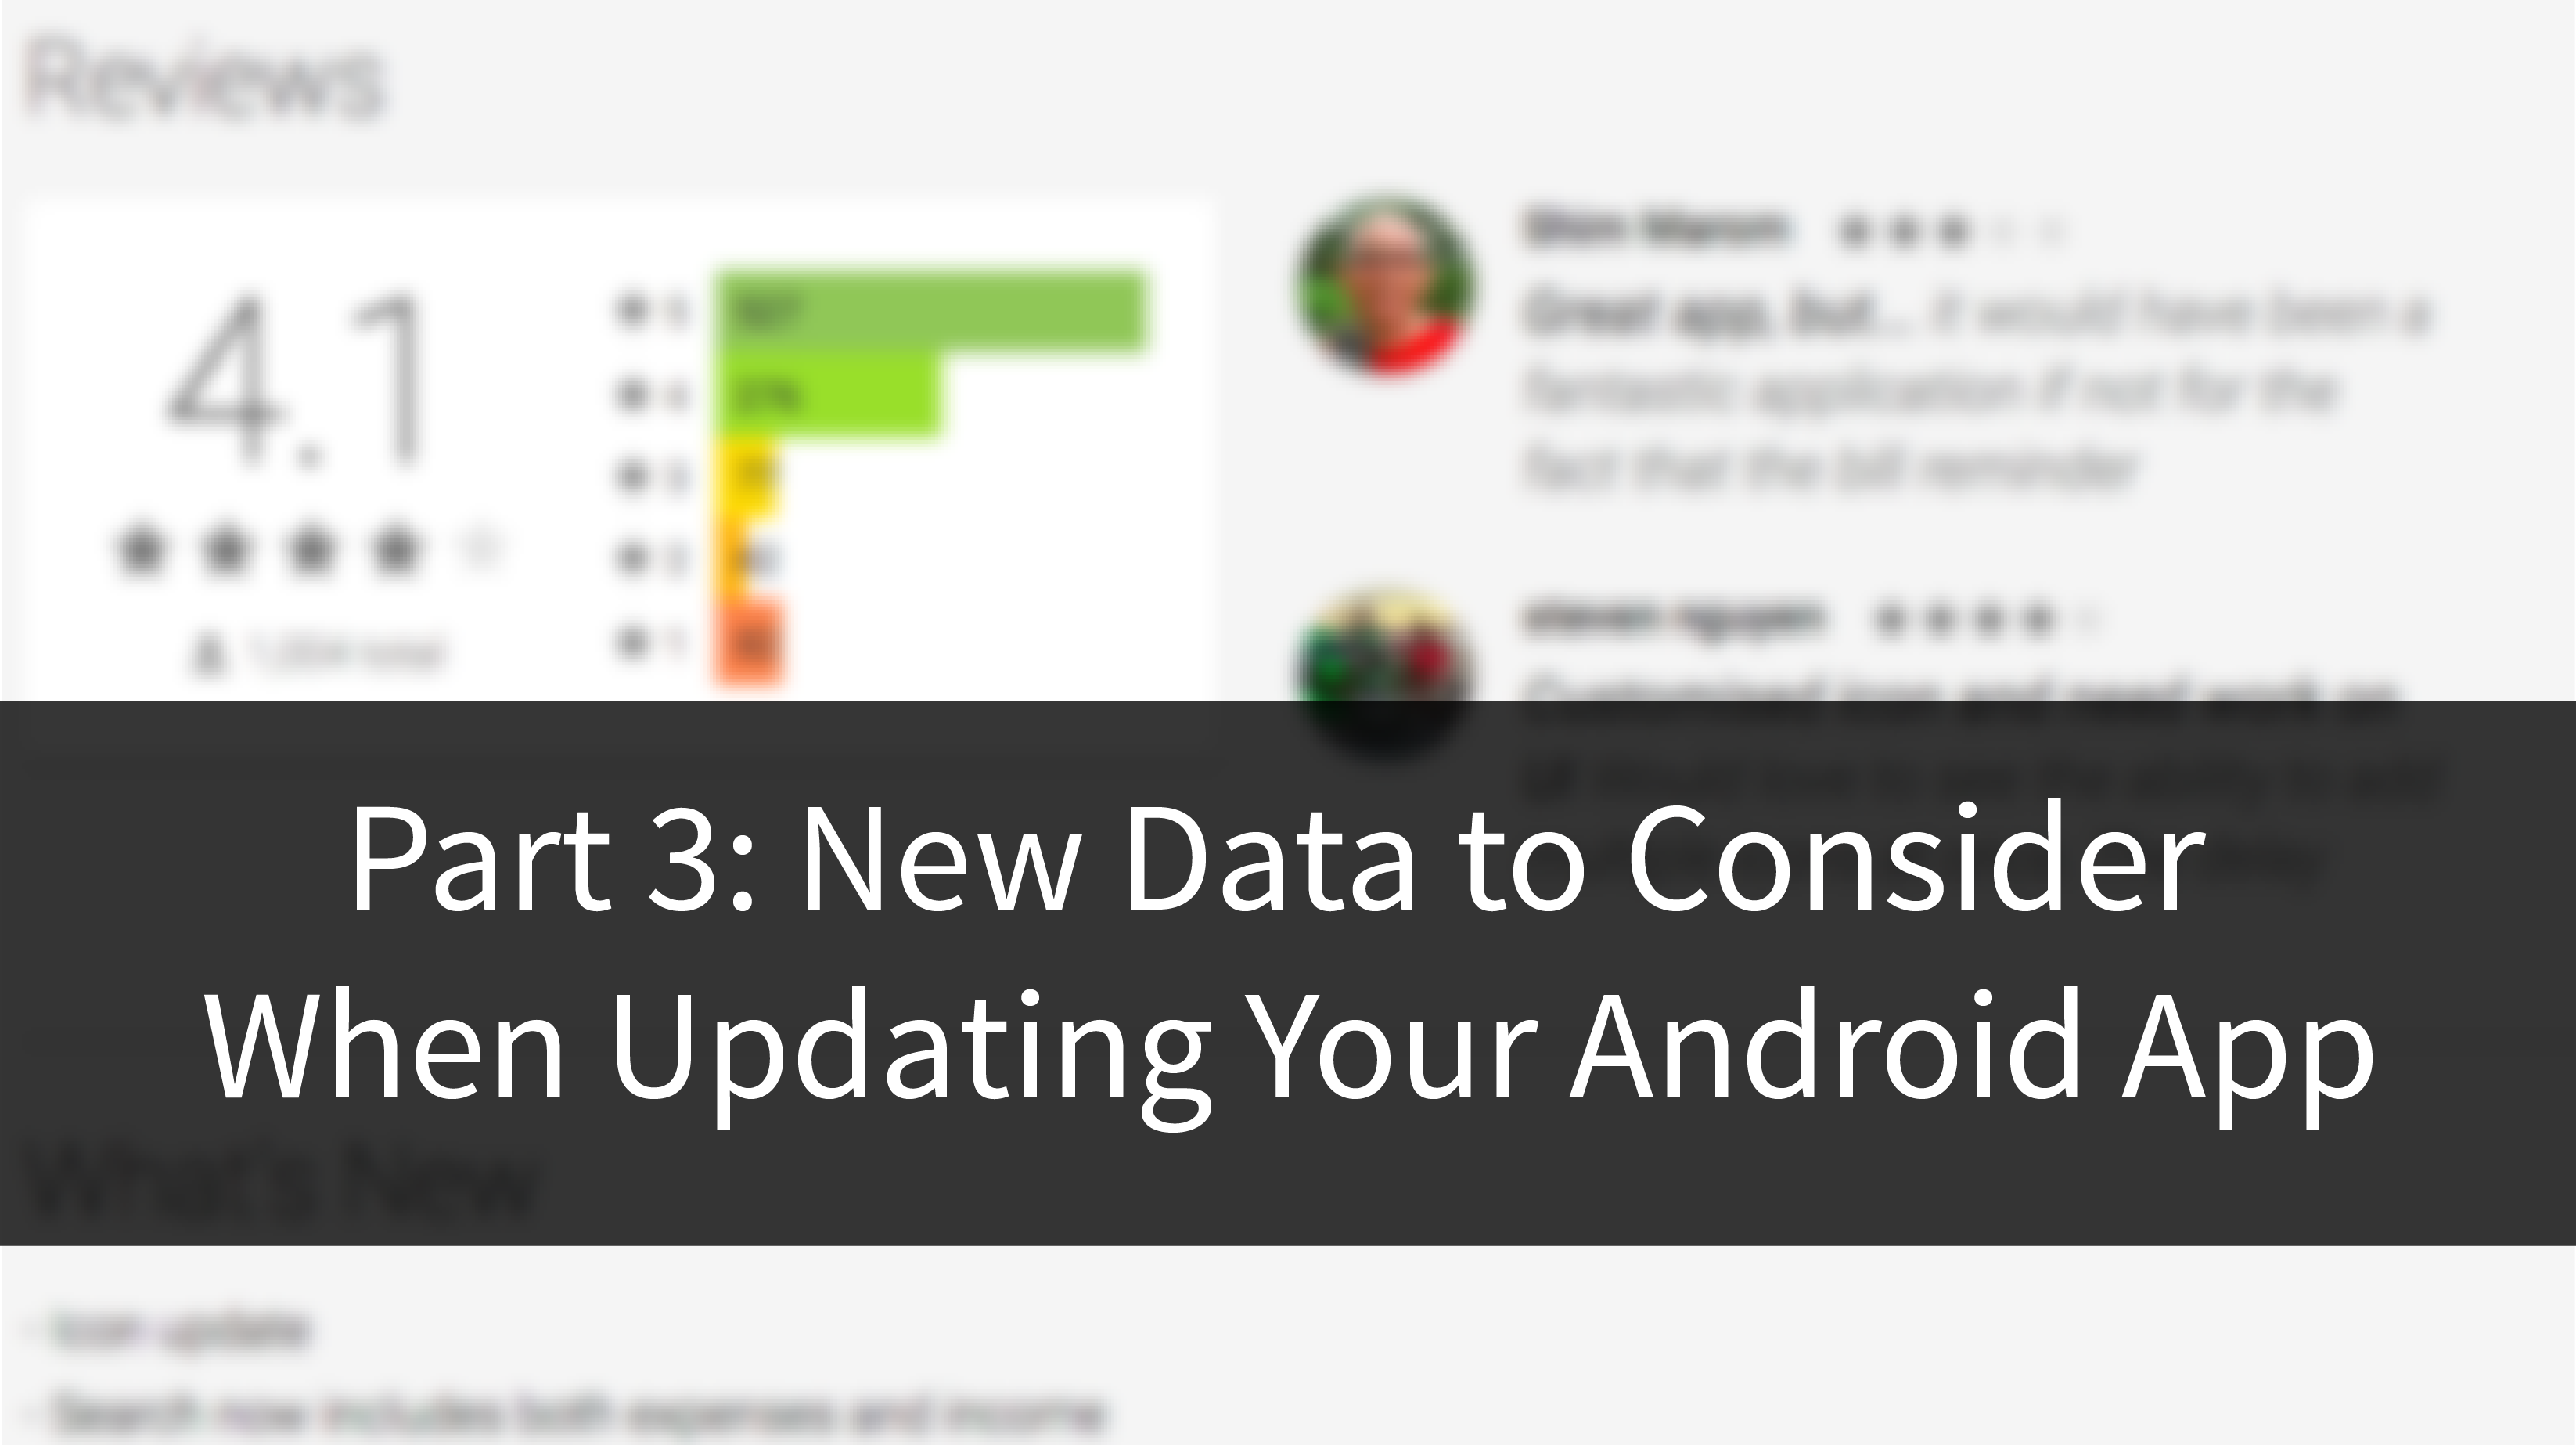 New Data to Consider When Updating Your Android App